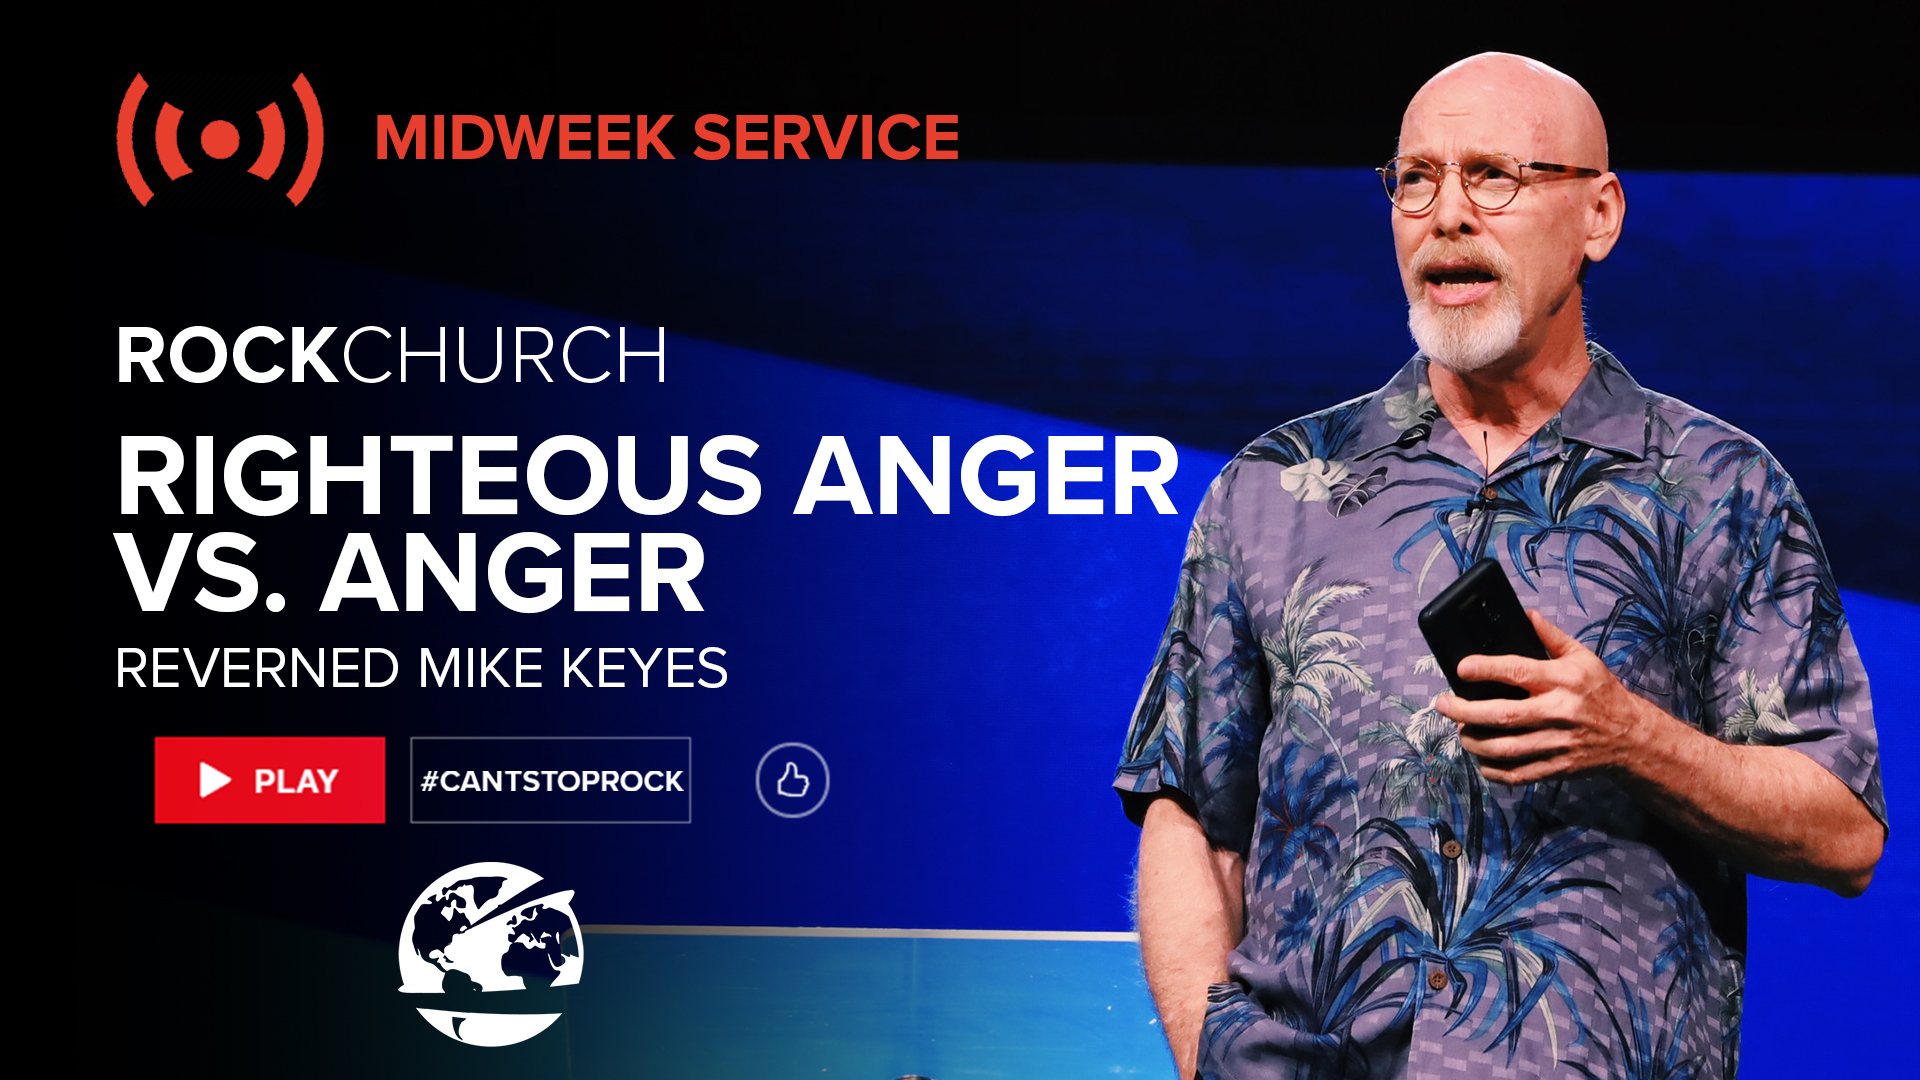 Watch Righteous Anger vs. Anger